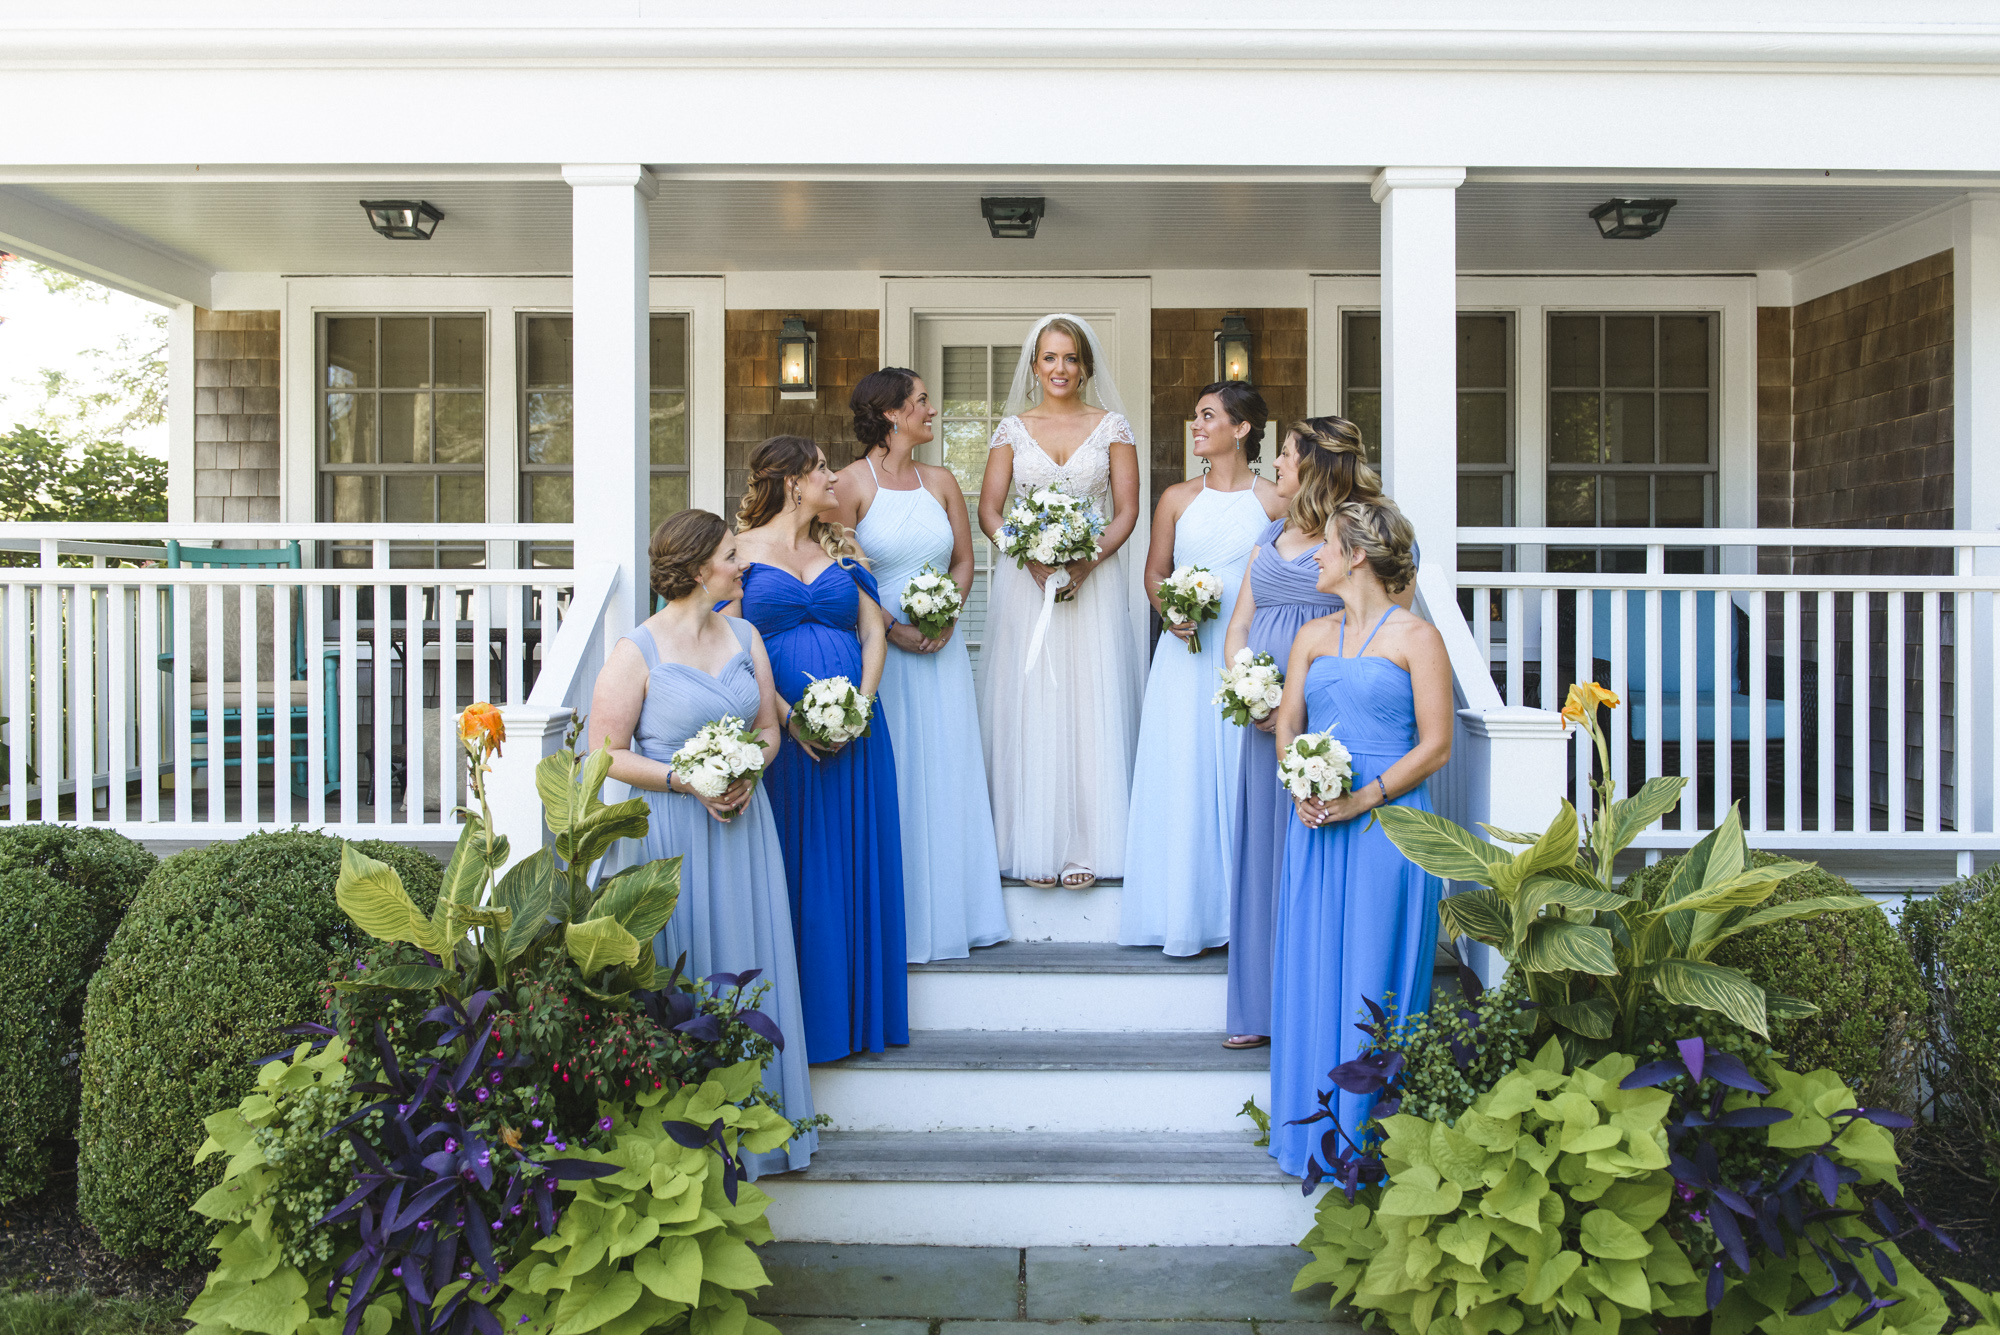 A bride and her bridesmaids at the Harbor View Hotel on Martha's Vineyard photo by David Welch Photography